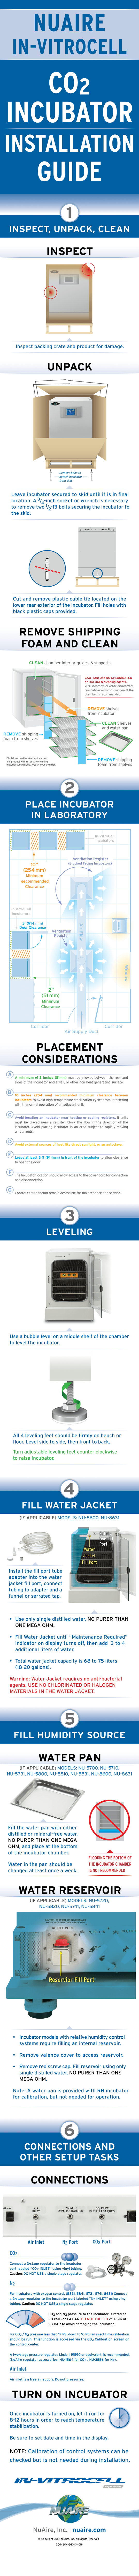 CO2 Incubator Installation Guide